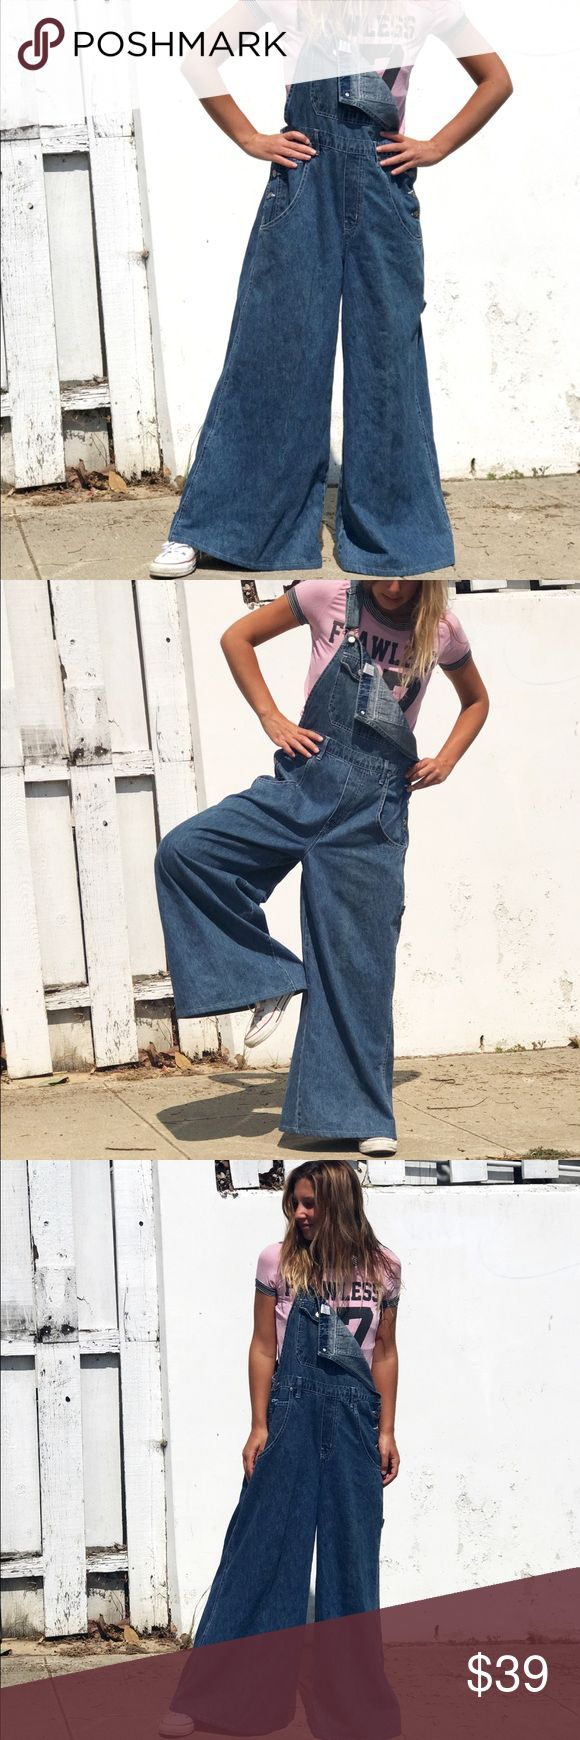 "Vintage wide Leg overalls Super super cool and stylish Overalls. Denim, pretty soft and medium wash. double pocket on the chest, and button closures on the sides. Legs are WIIIIDE. 70s style. Vintage salopette (how we call it in Italy), brand Zana•di Jeans. Size L. Only flaw is on the last picture. The left button on the top part is broken. Measurements: length 55.5""! Hips 17.5"". In love. #overalls #jeans #denim #wideleg #wide #palazzo #style #vintage Vintage Jeans Overalls"